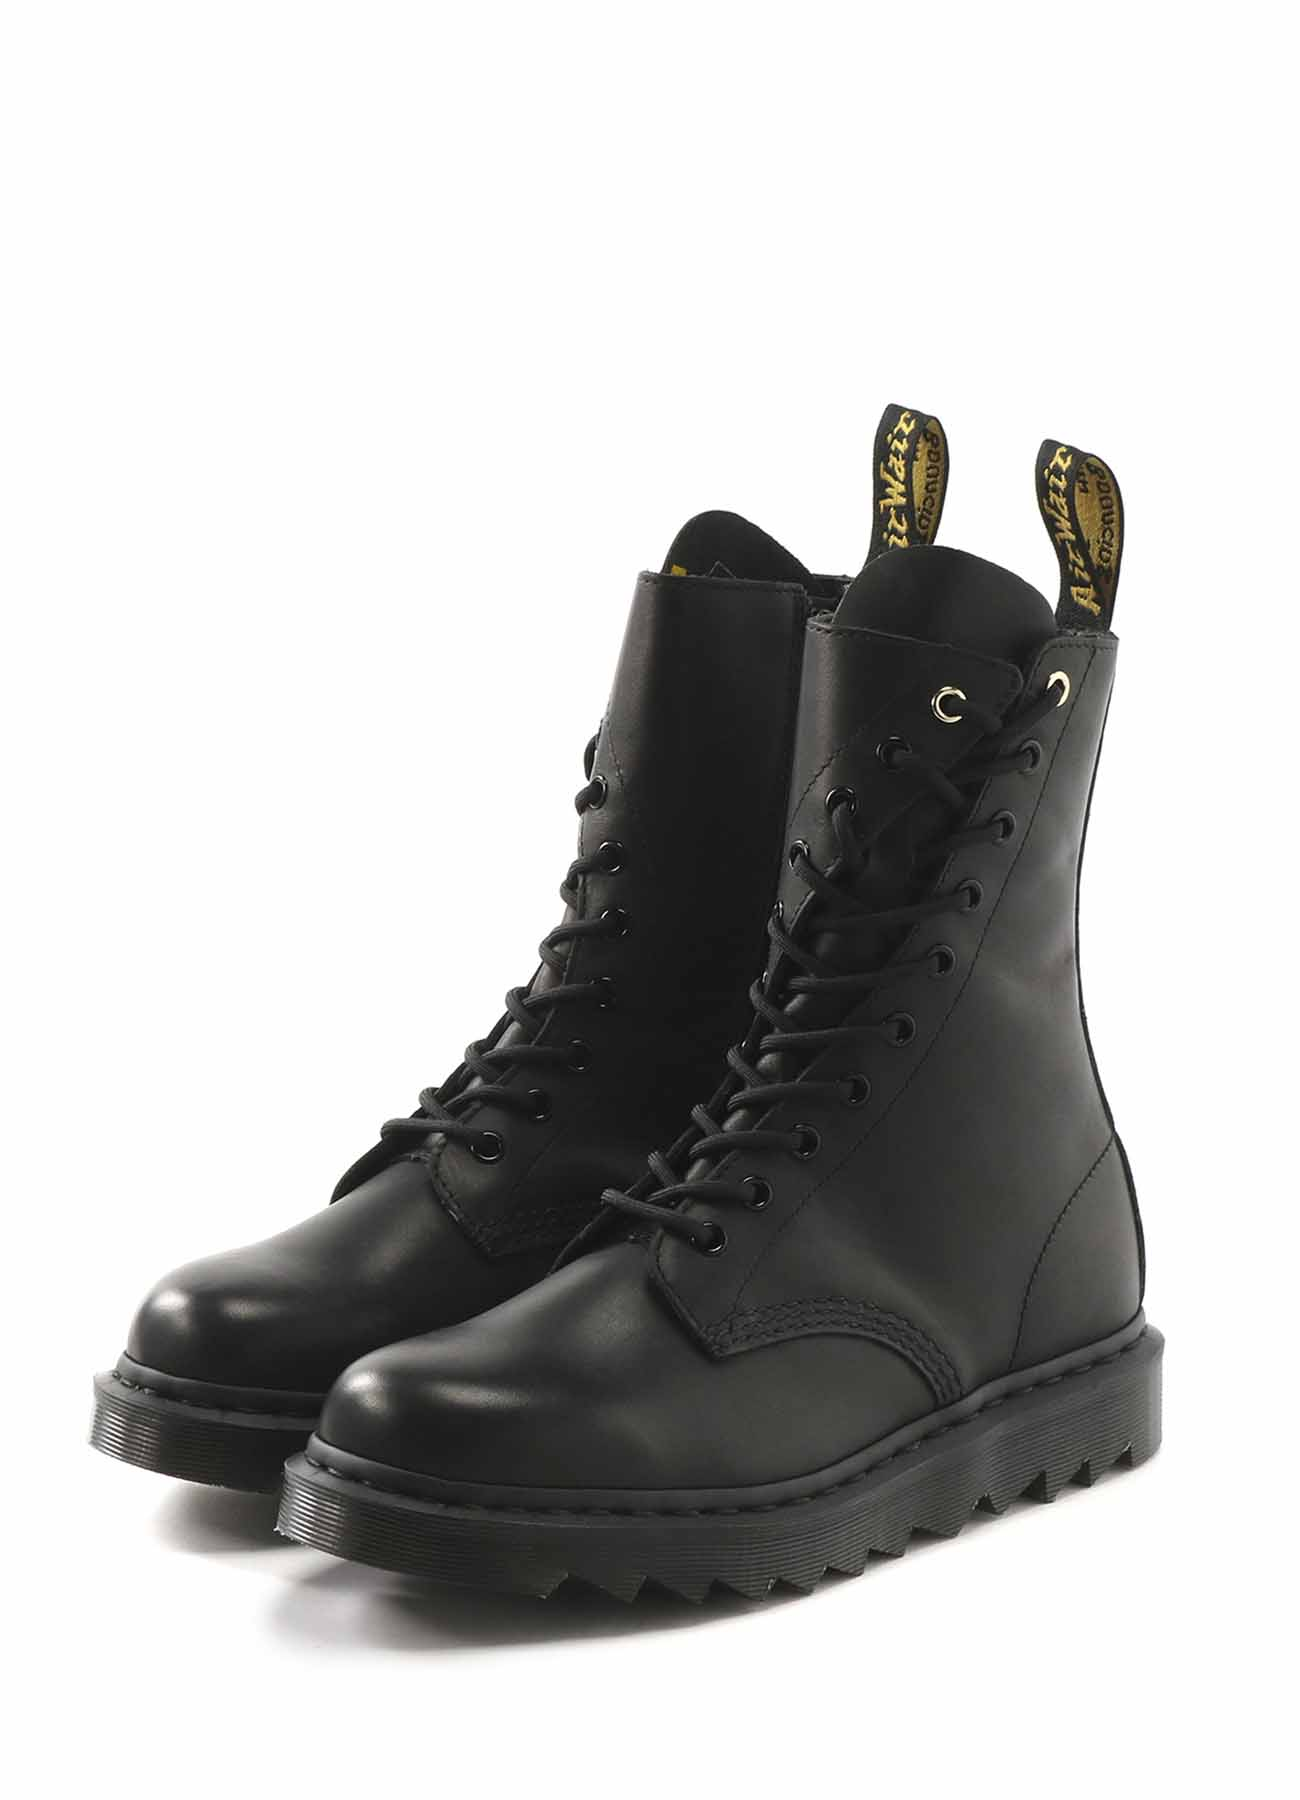 Dr.Martens BLACK TEMPERLEY TWISTED BOOTS